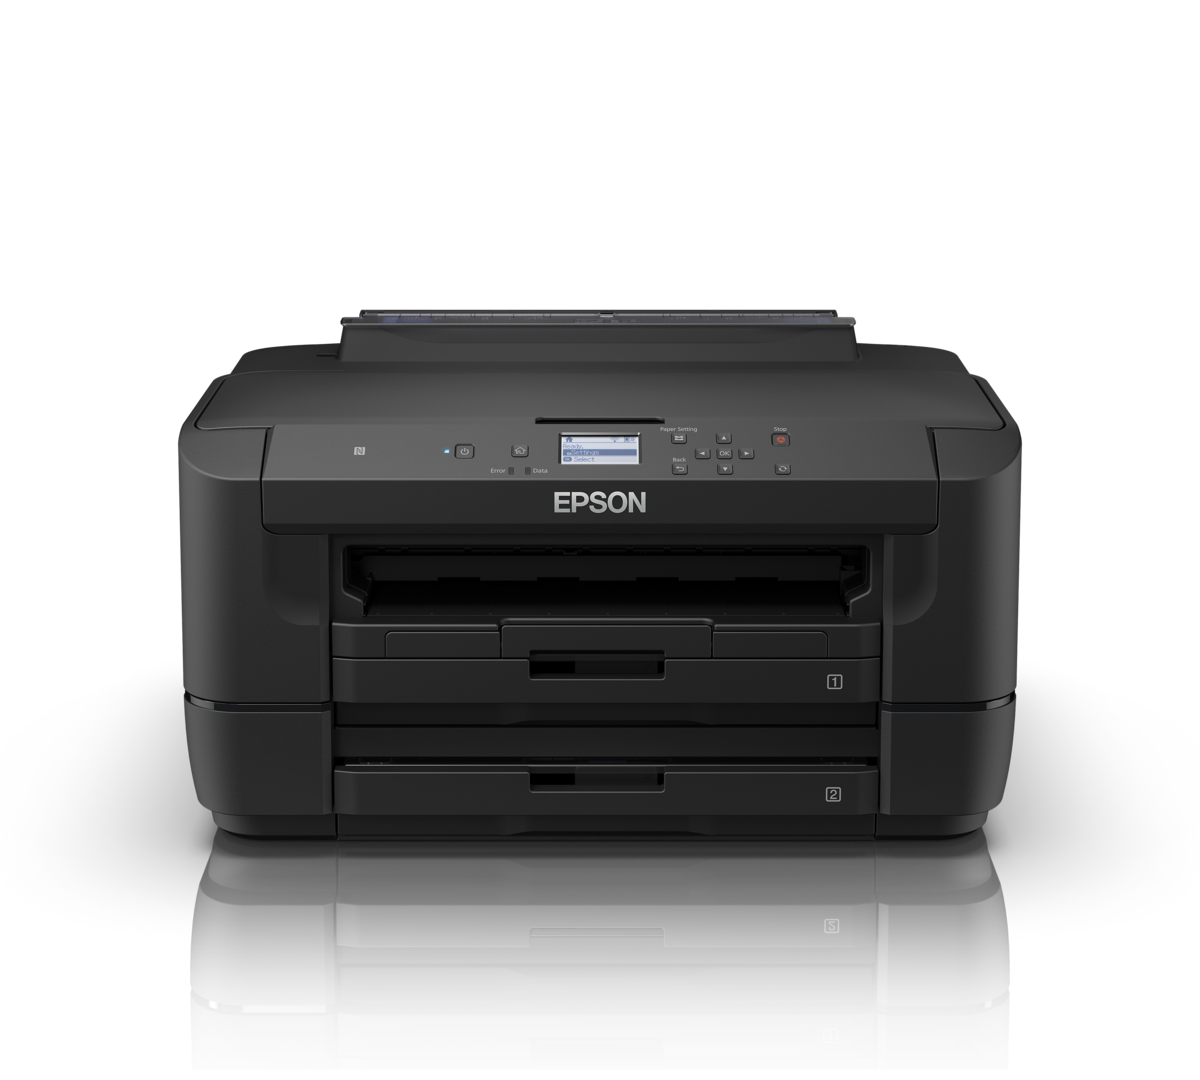 Epson WorkForce WF-7211 A3 Wi-Fi Duplex Inkjet Printer